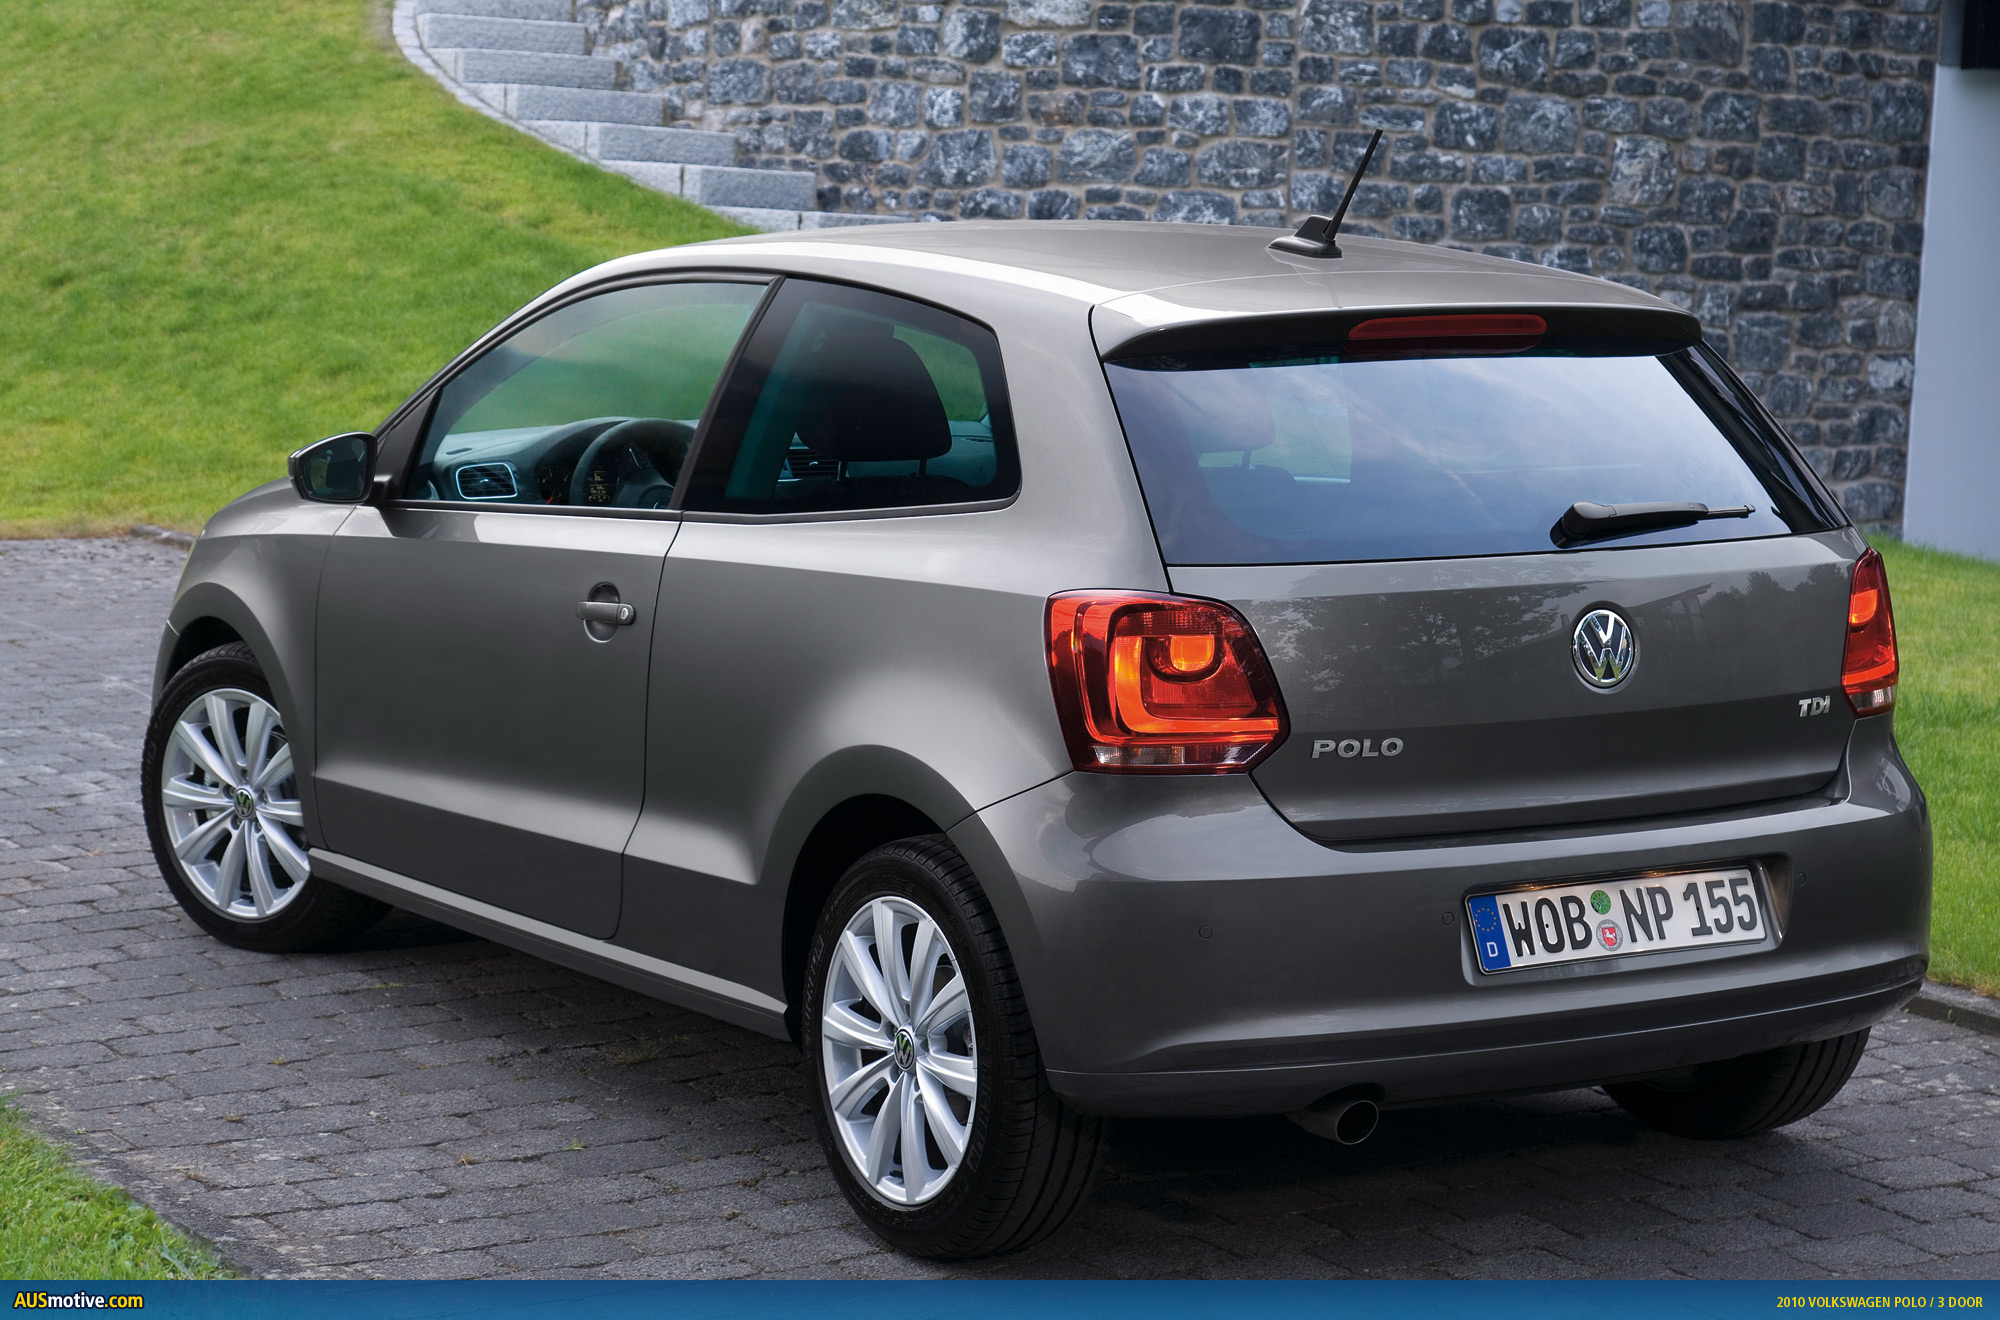 volkswagen polo 16 photos news reviews specs car listings. Black Bedroom Furniture Sets. Home Design Ideas